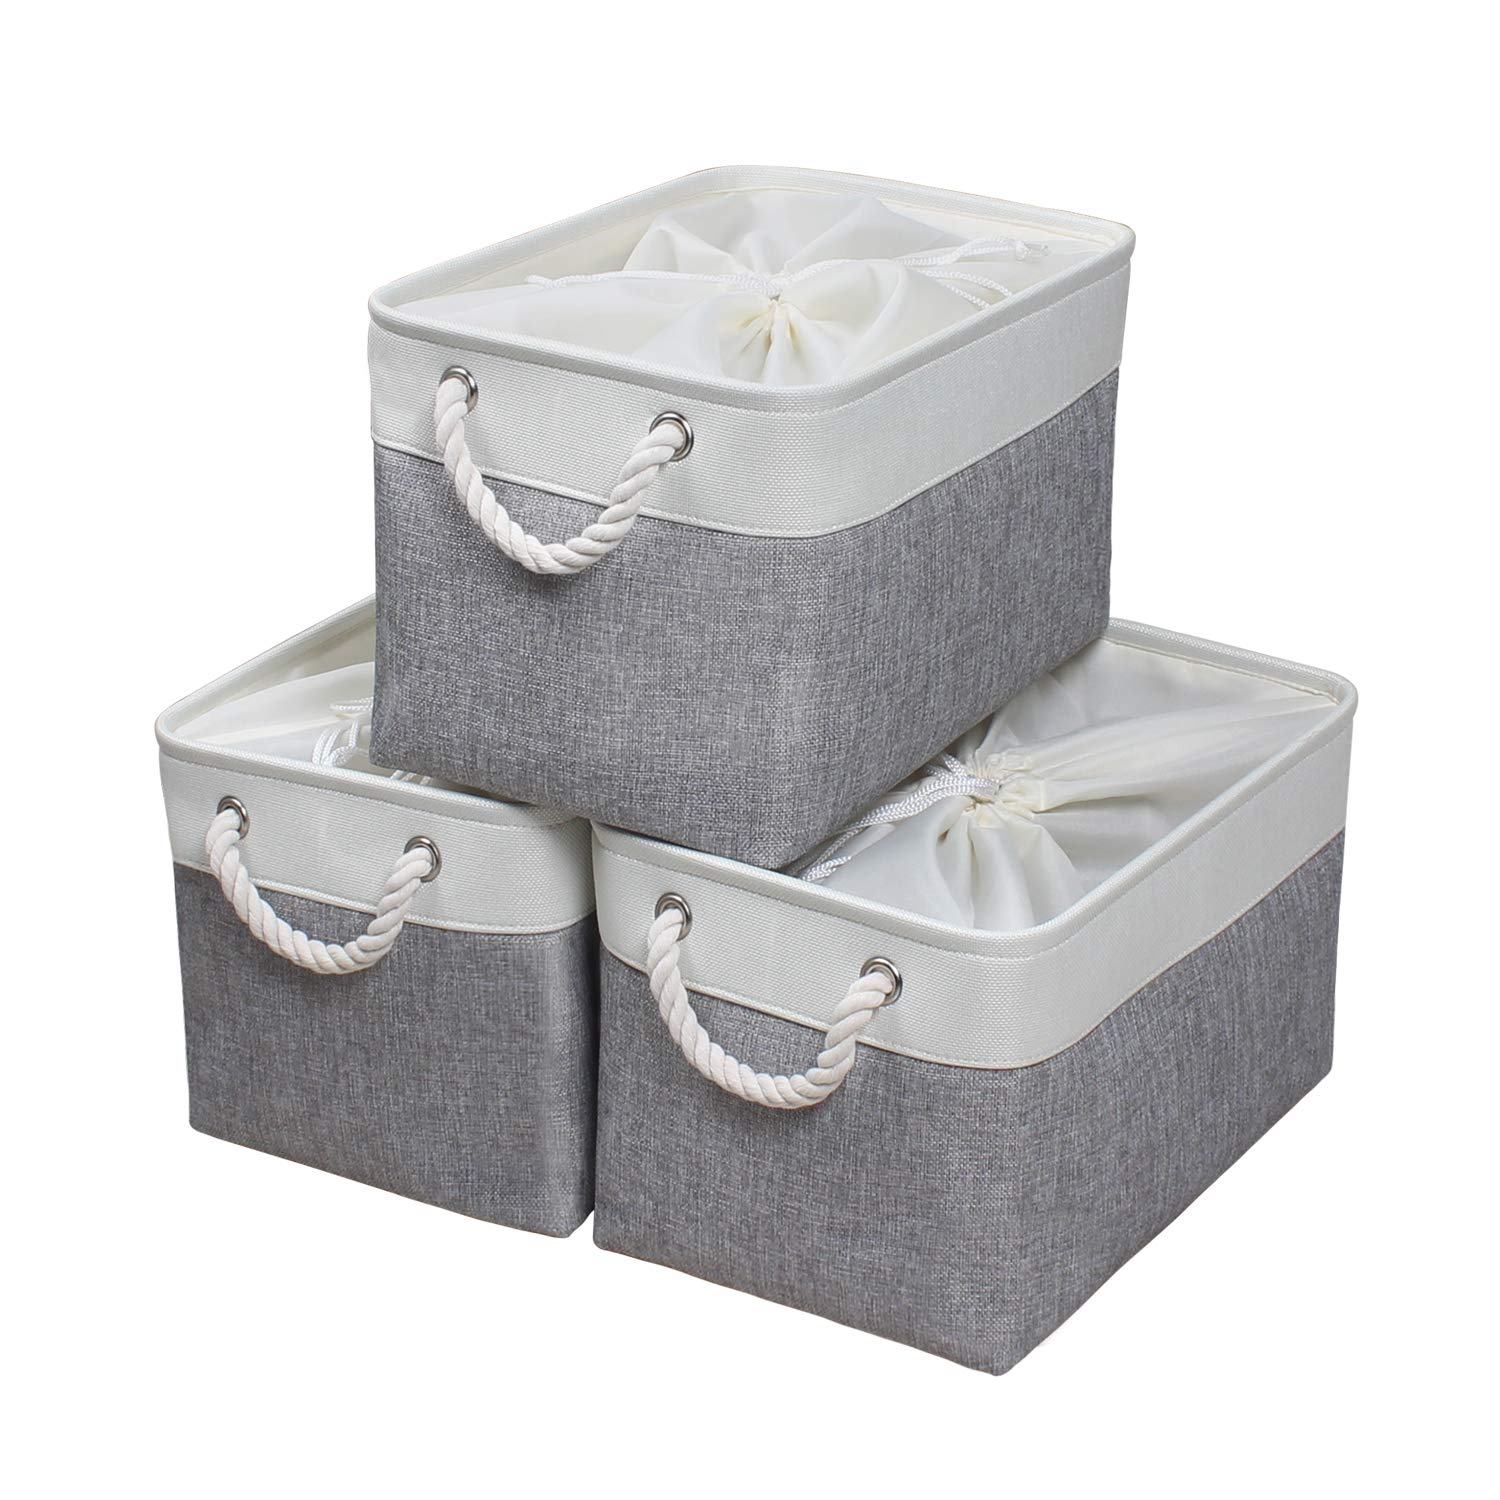 Blue KEEGH Large Fold-able Fabric Storage Bins 13x13 Collapsible Storage Cubes Organizer Basket 3-Pack with Sturdy Cotton Carry Handles for Home Closet Cube Shelves Organization